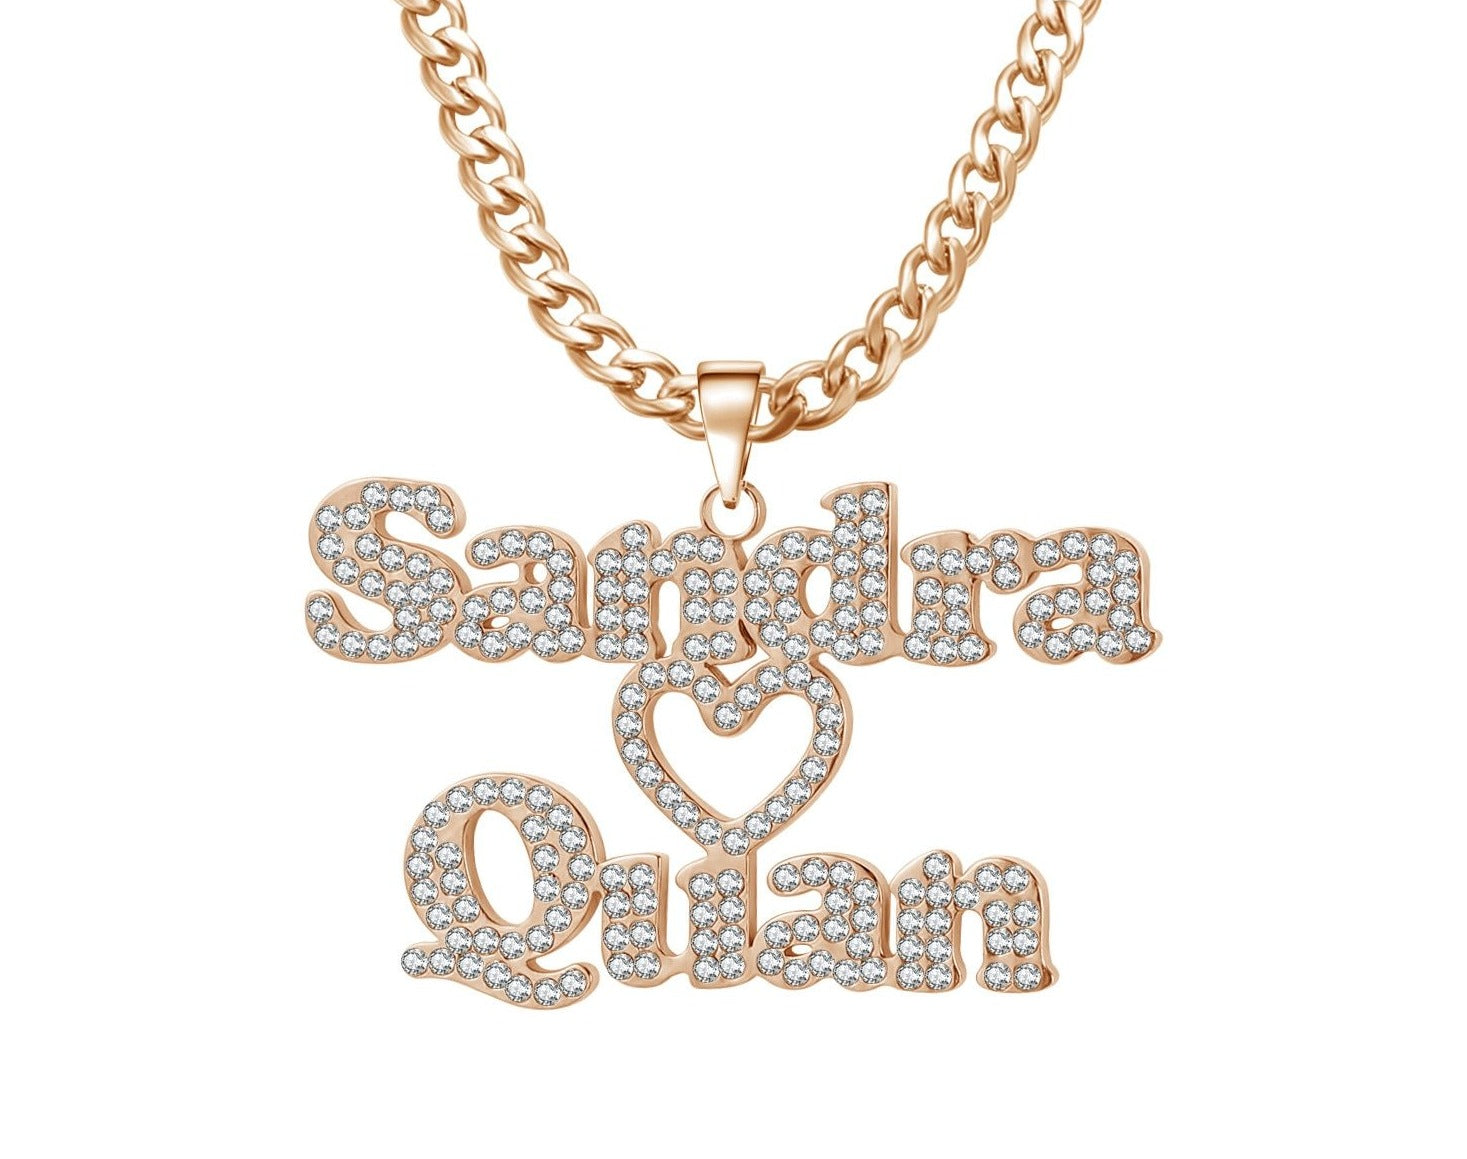 Personalized Iced Out Double Name Necklace - Limitless Jewellery